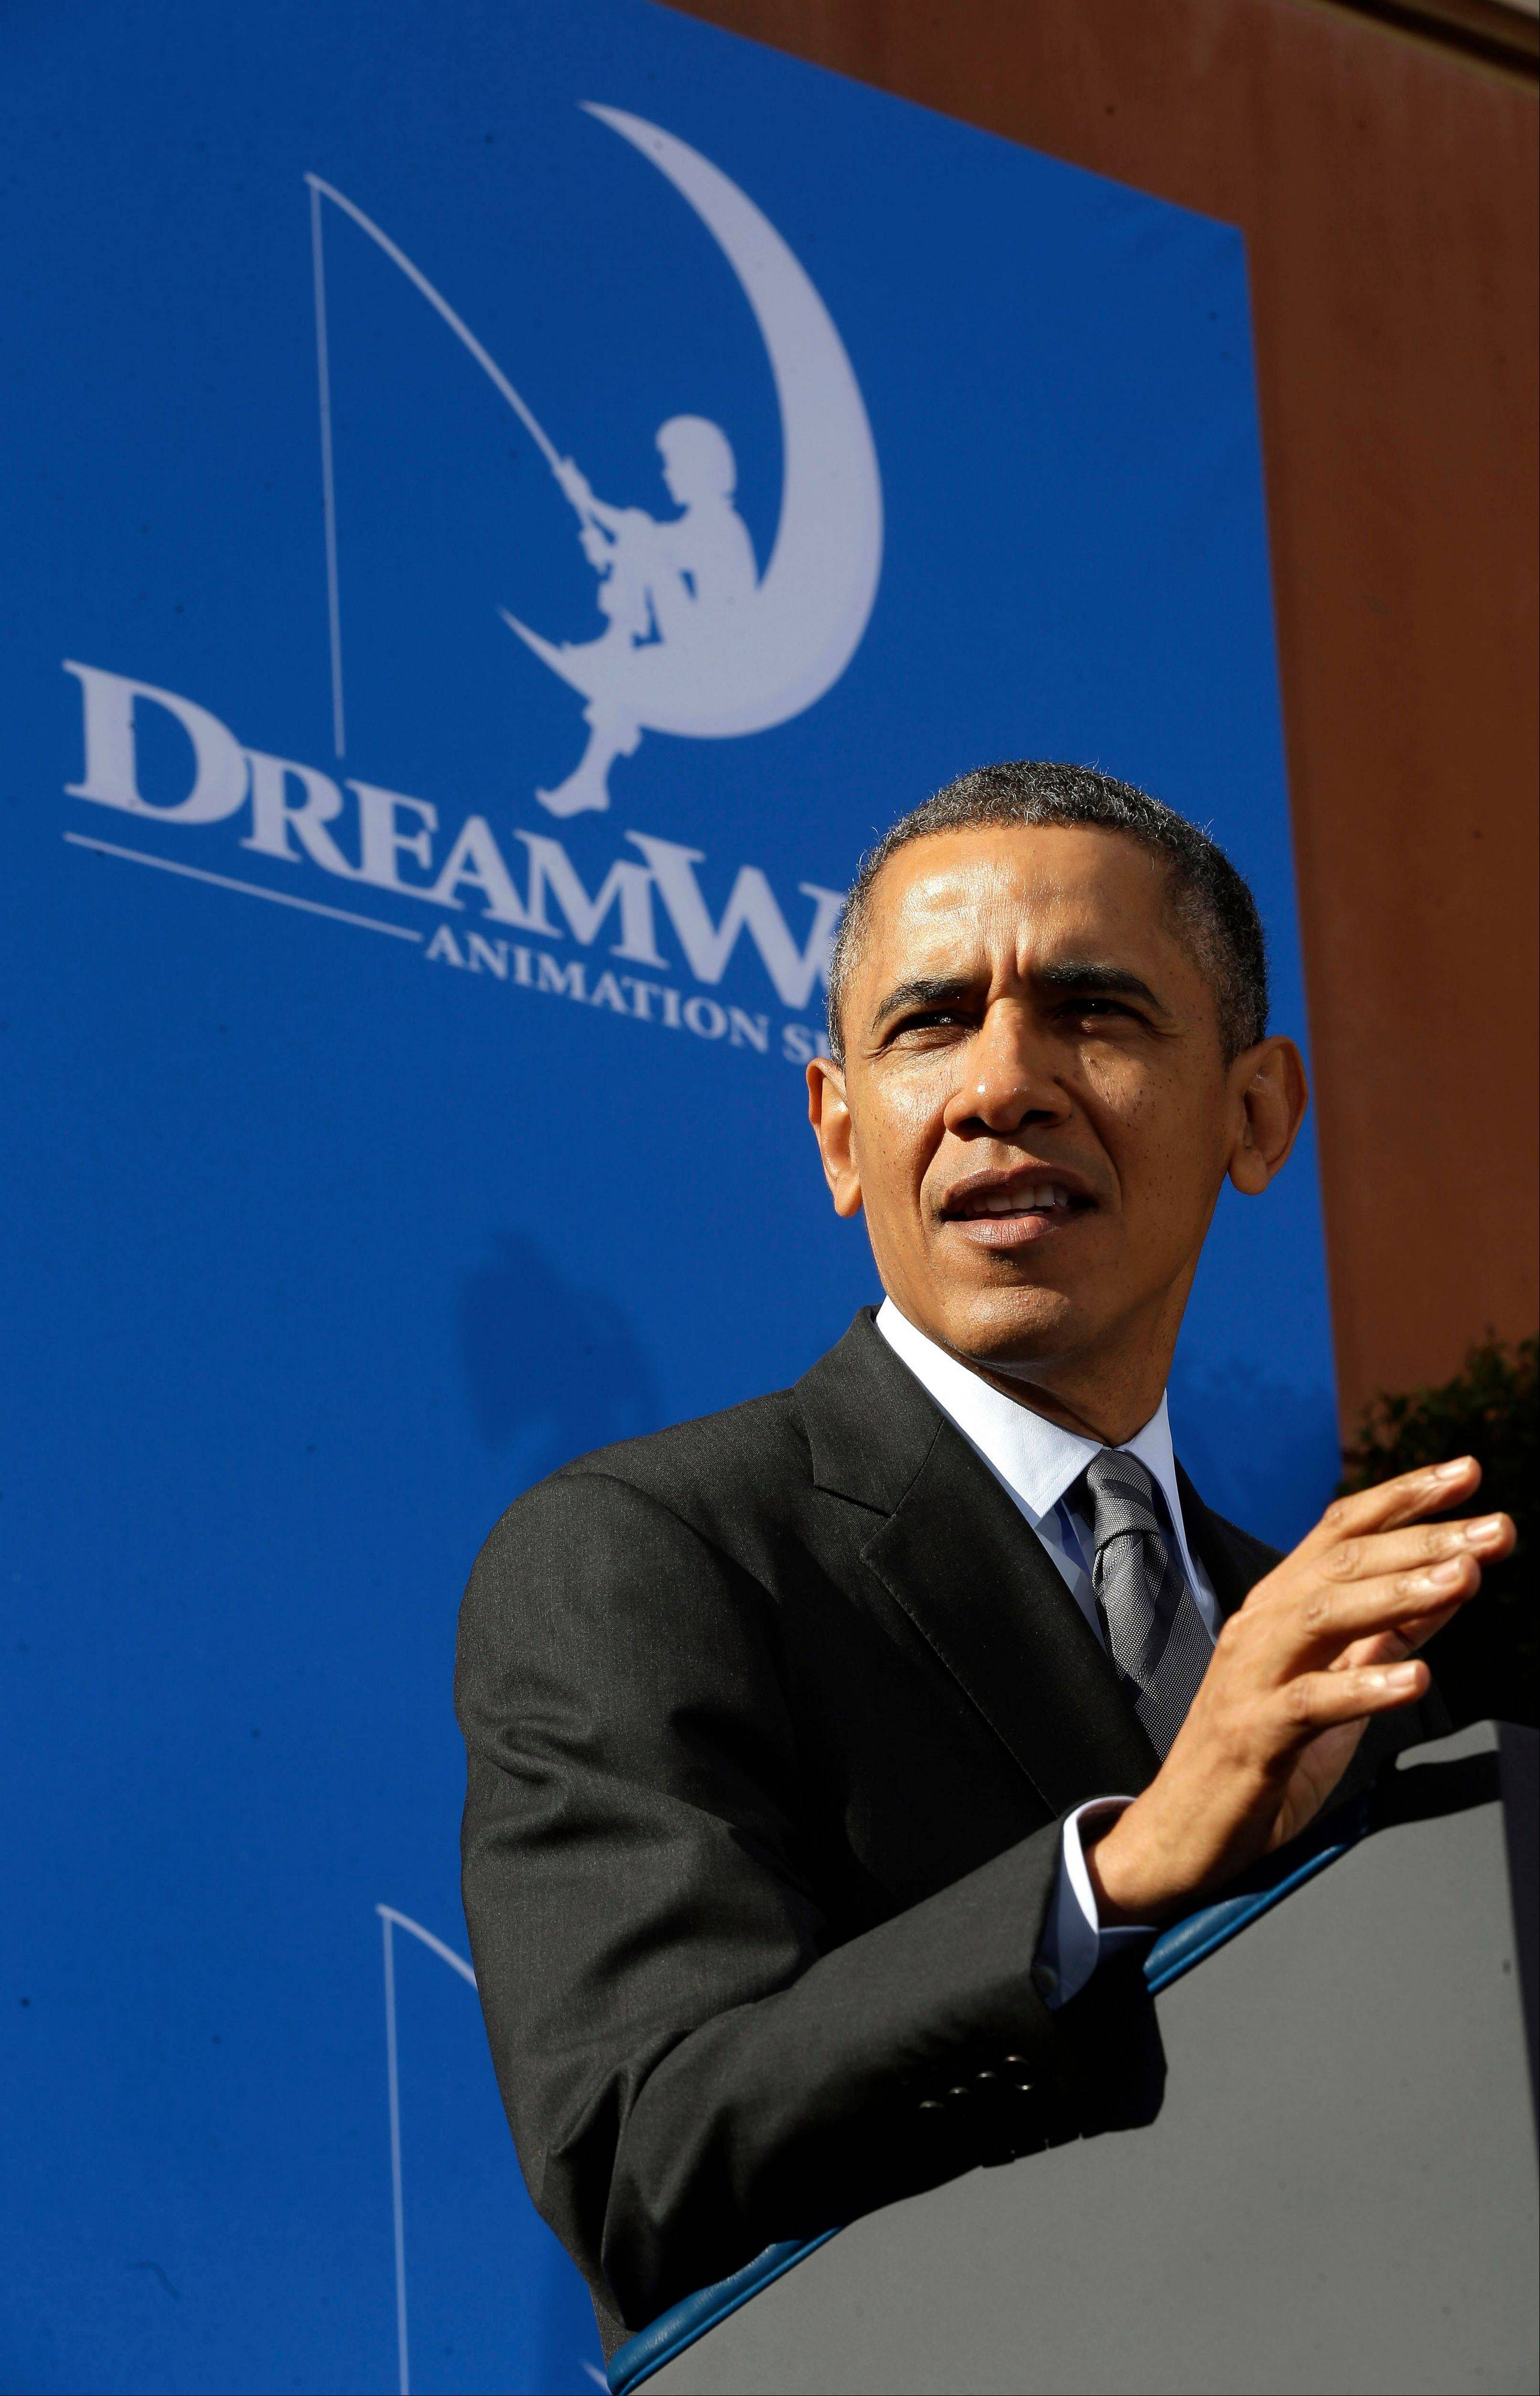 President Barack Obama speaks during his visit Tuesday to DreamWorks Studios in Glendale, Calif.